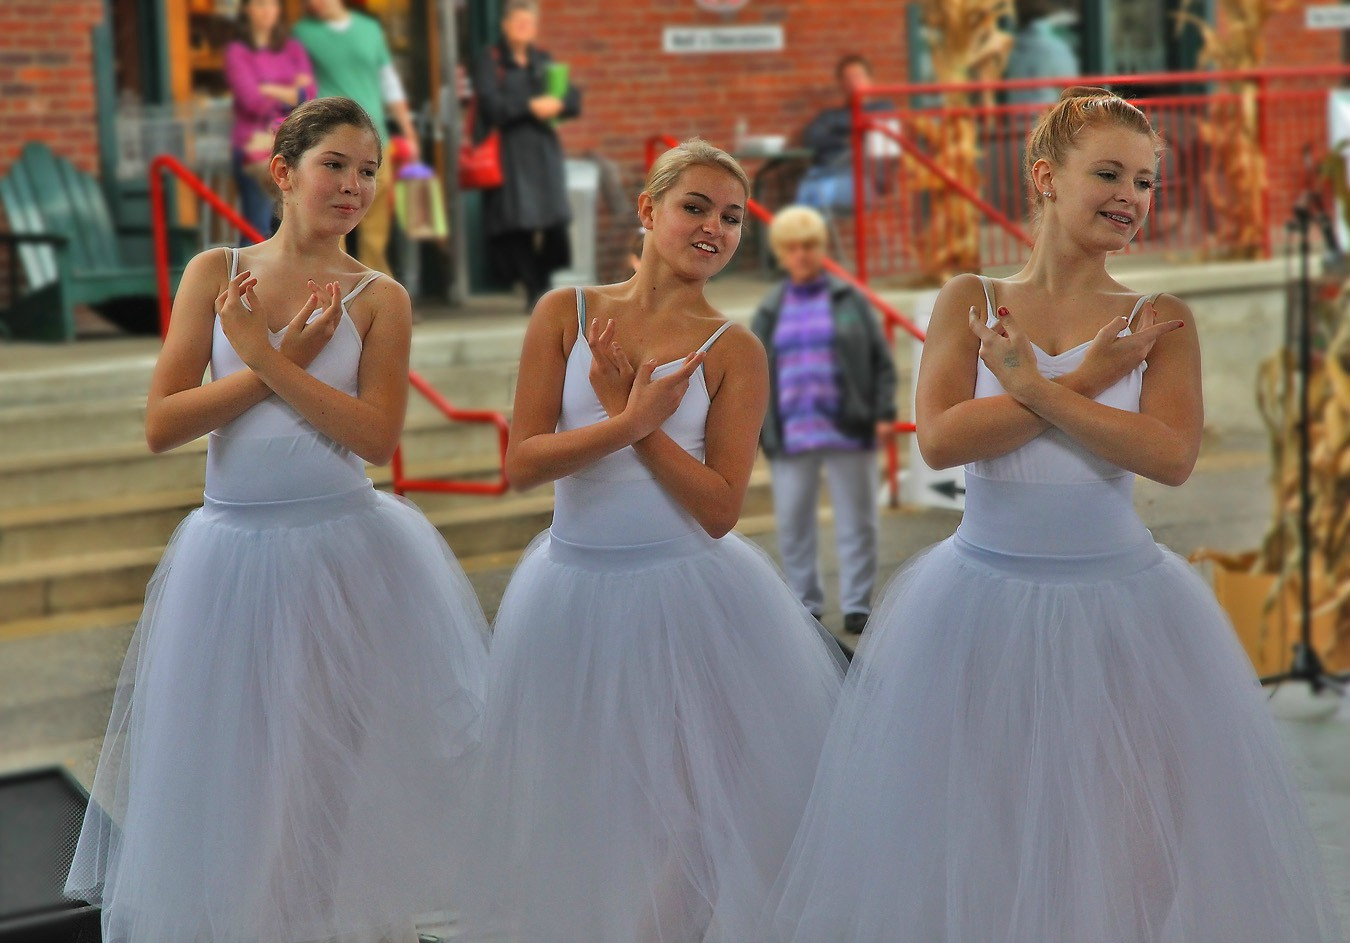 youth ballet at farmer s mkt on a cold day img aw sava gregory and verena